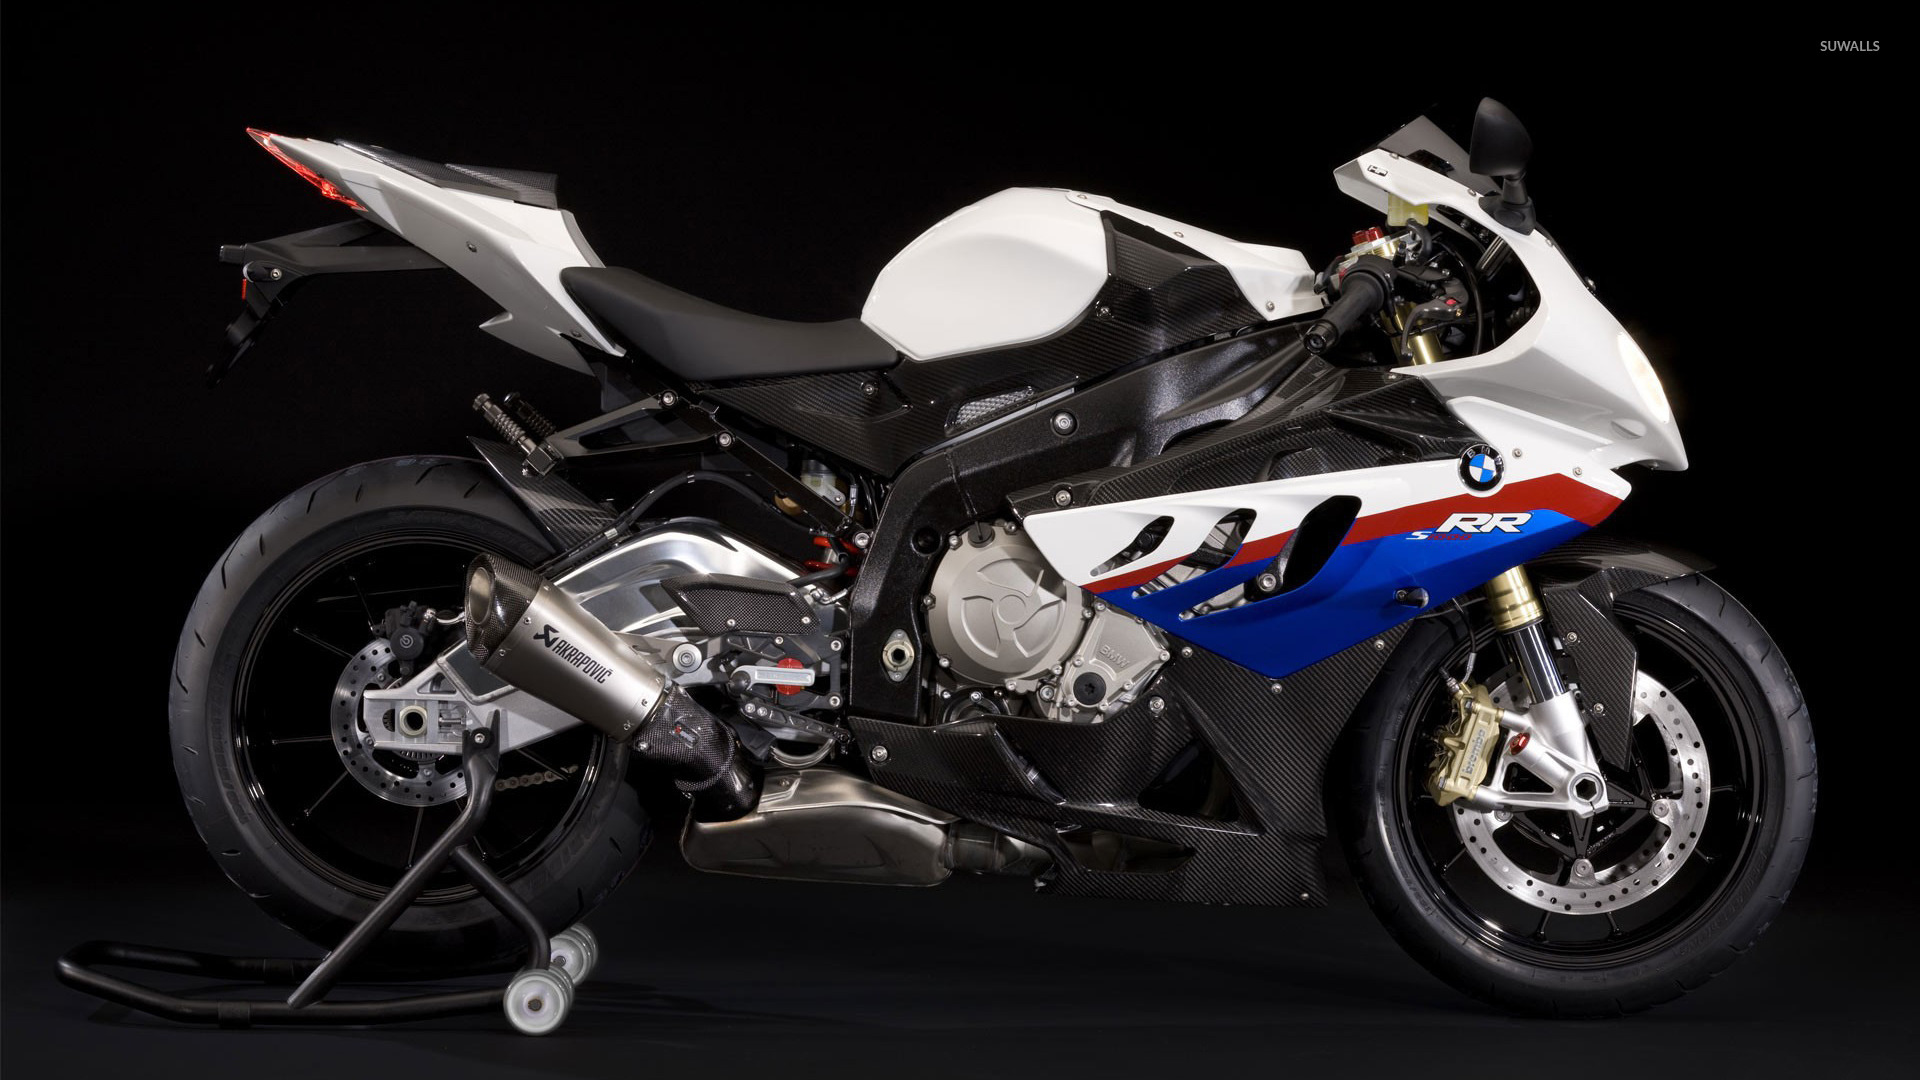 bmw s1000rr wallpaper wallpapersafari. Black Bedroom Furniture Sets. Home Design Ideas